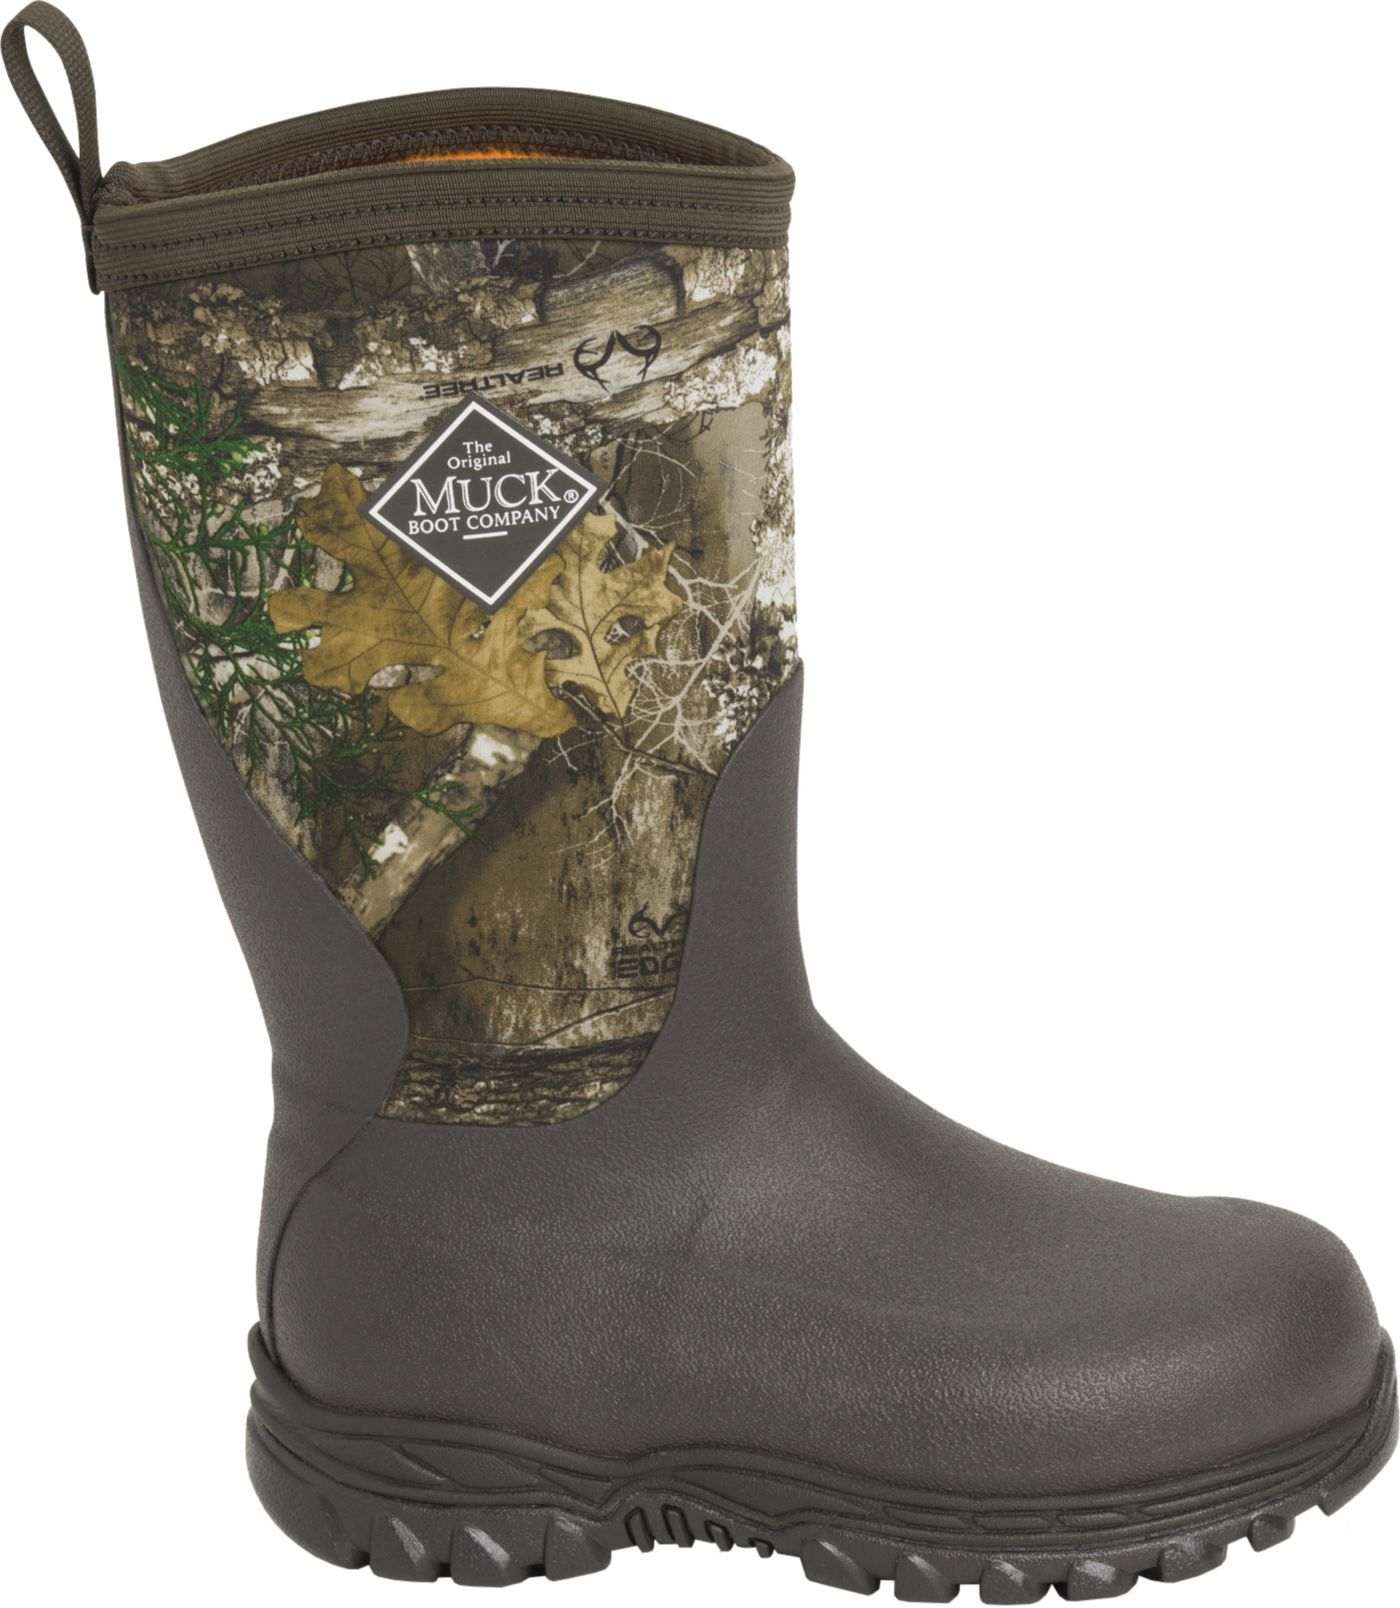 Muck Boots Kids' Rugged II Realtree Edge Rubber Hunting Boots